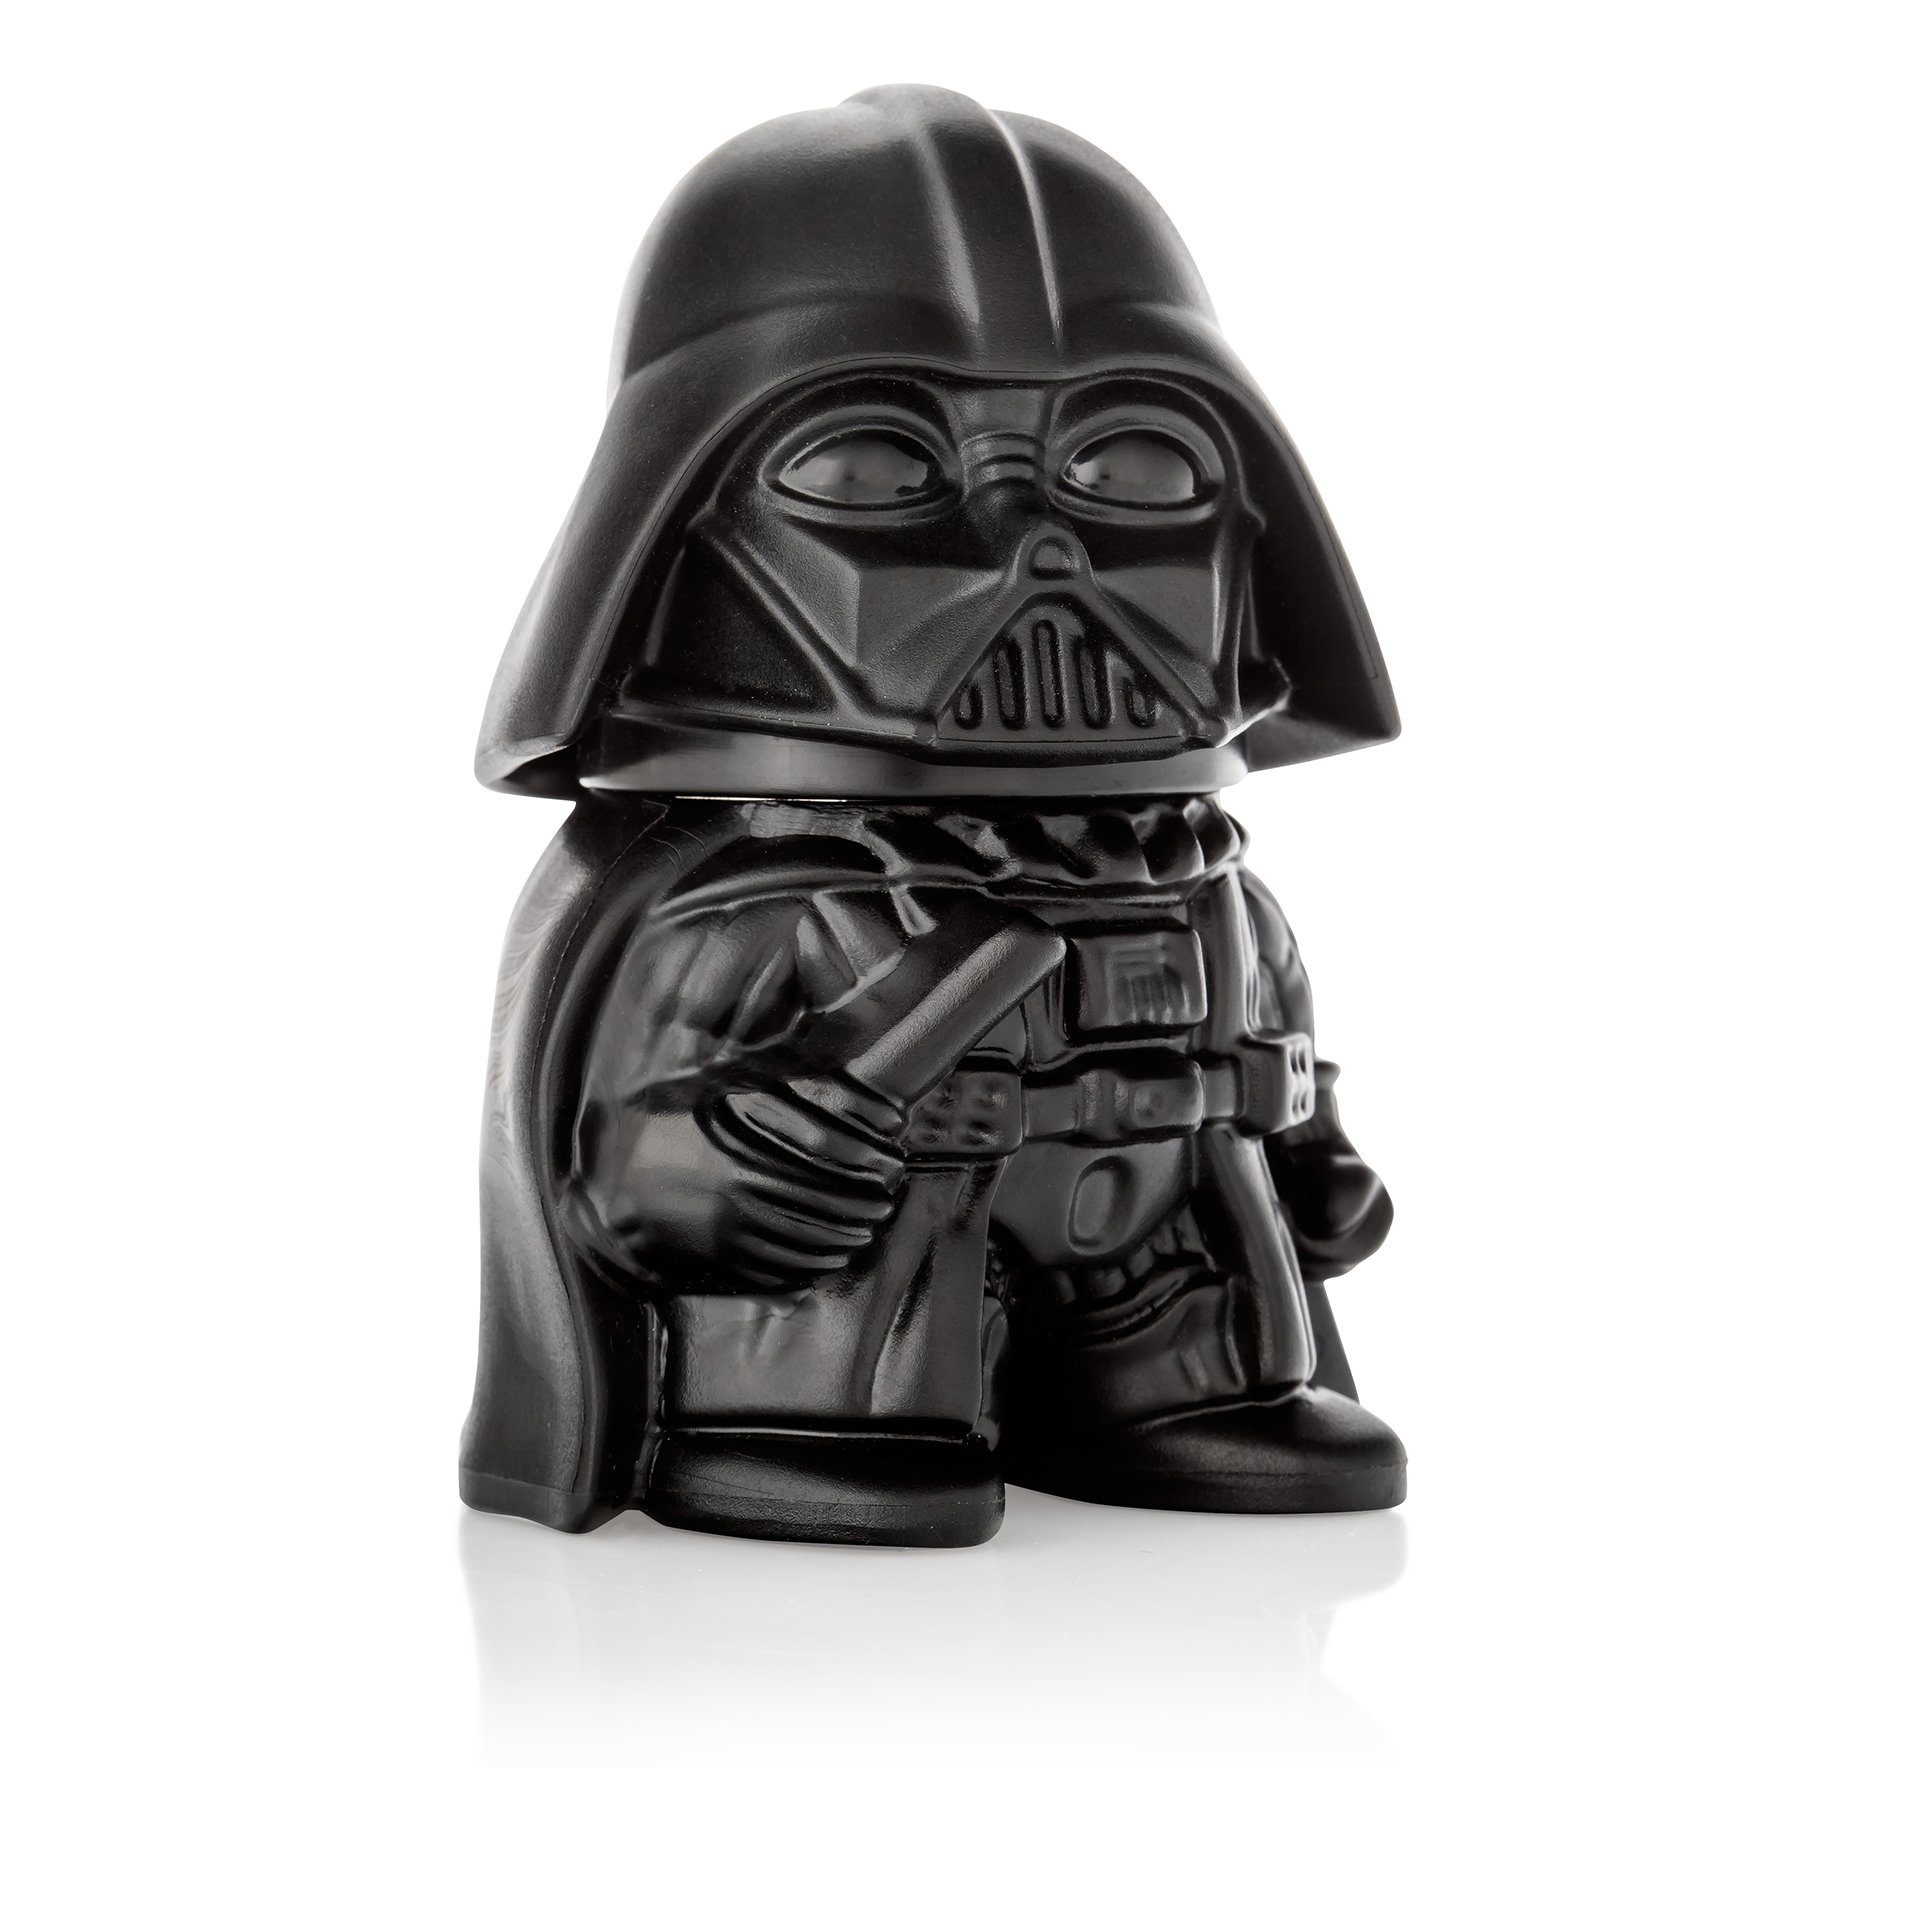 Star Wars Herb Grinder, Darth Vader Weed Grinder With Pollen Keef Catcher, Perfect Size 2\